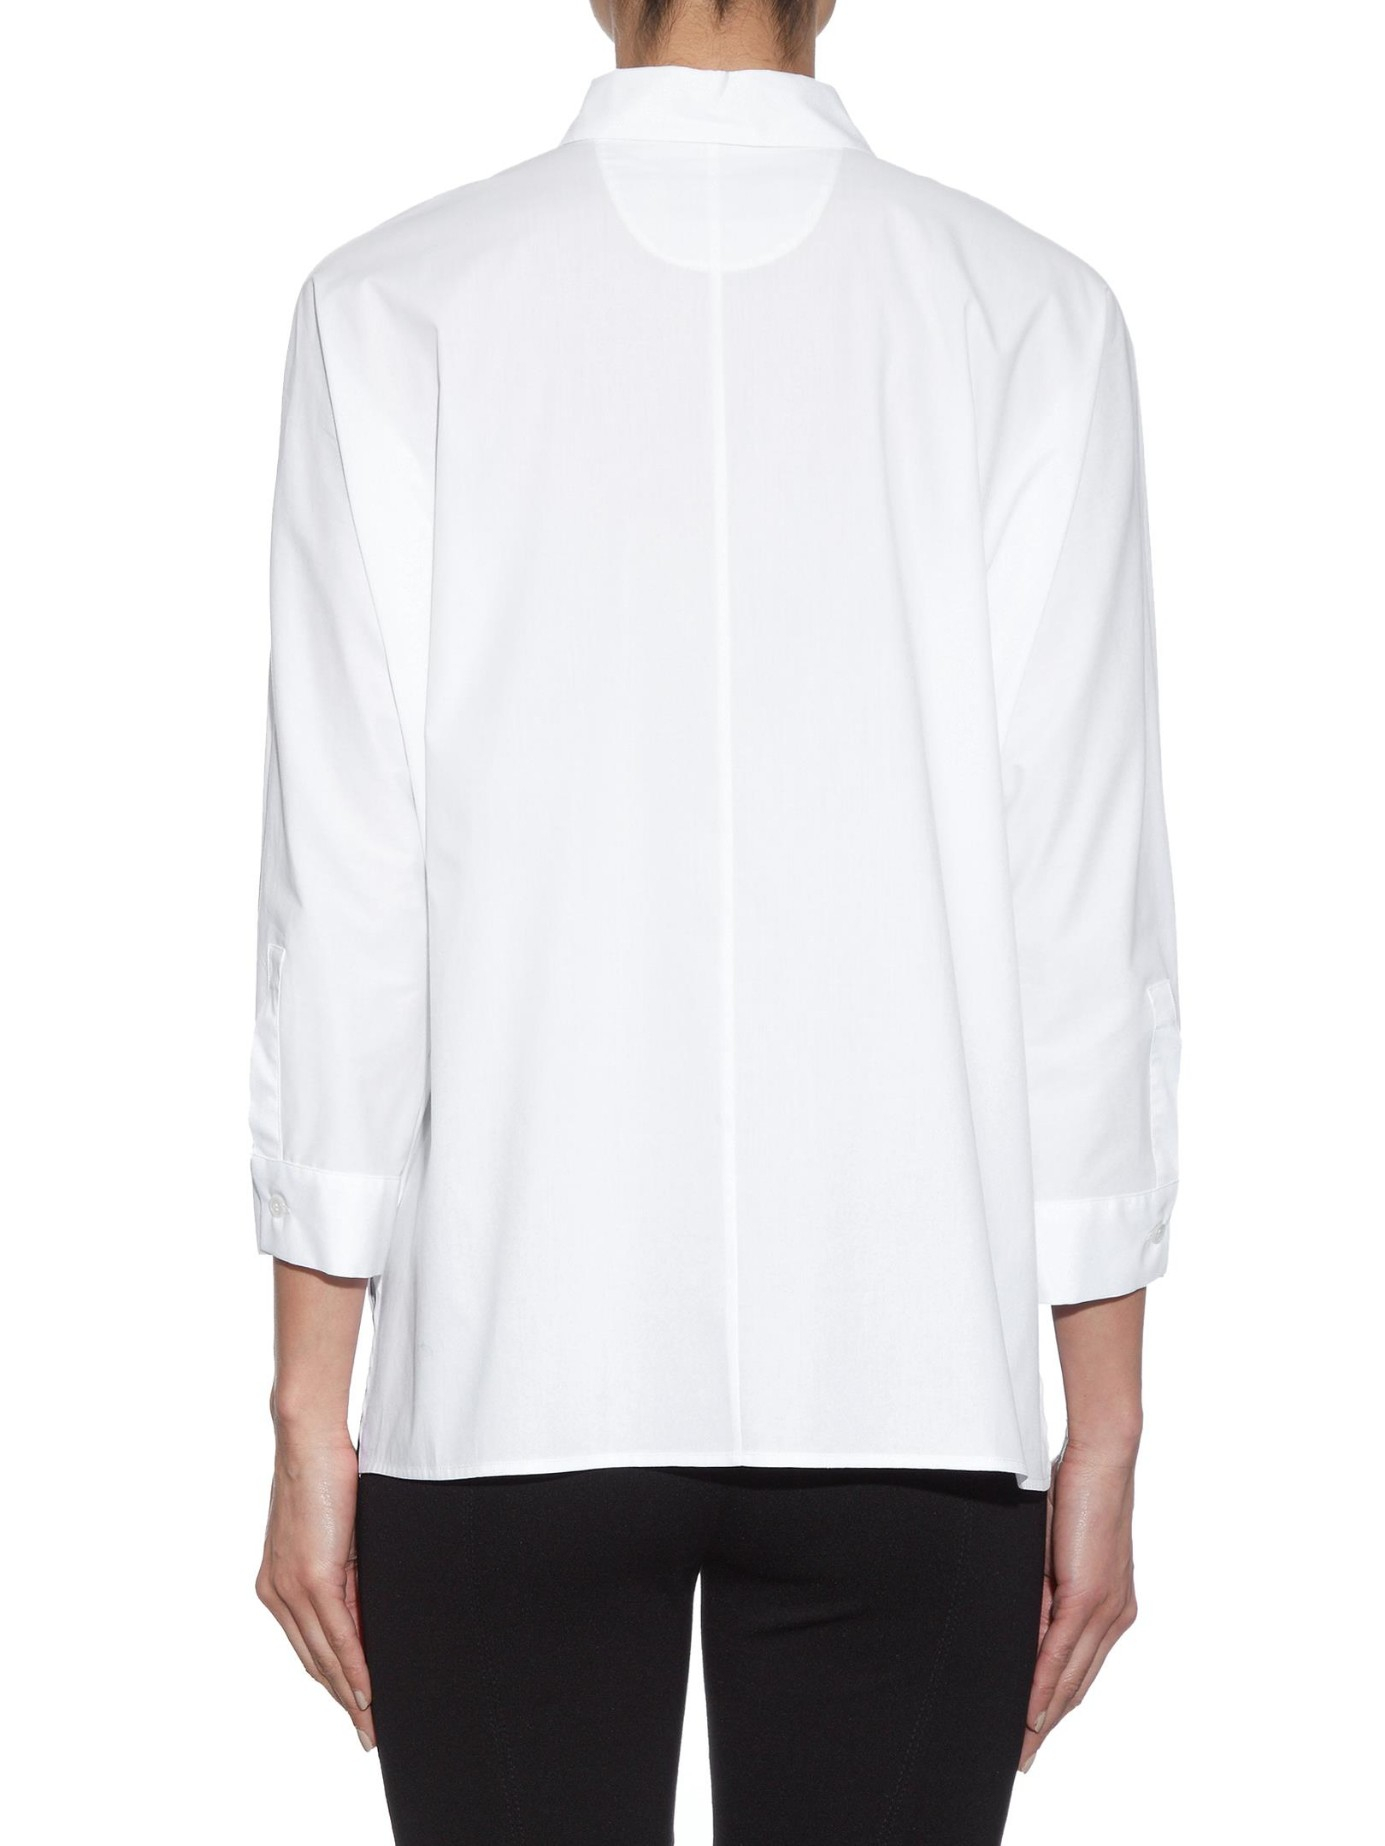 weekend by maxmara kassel shirt in white lyst. Black Bedroom Furniture Sets. Home Design Ideas